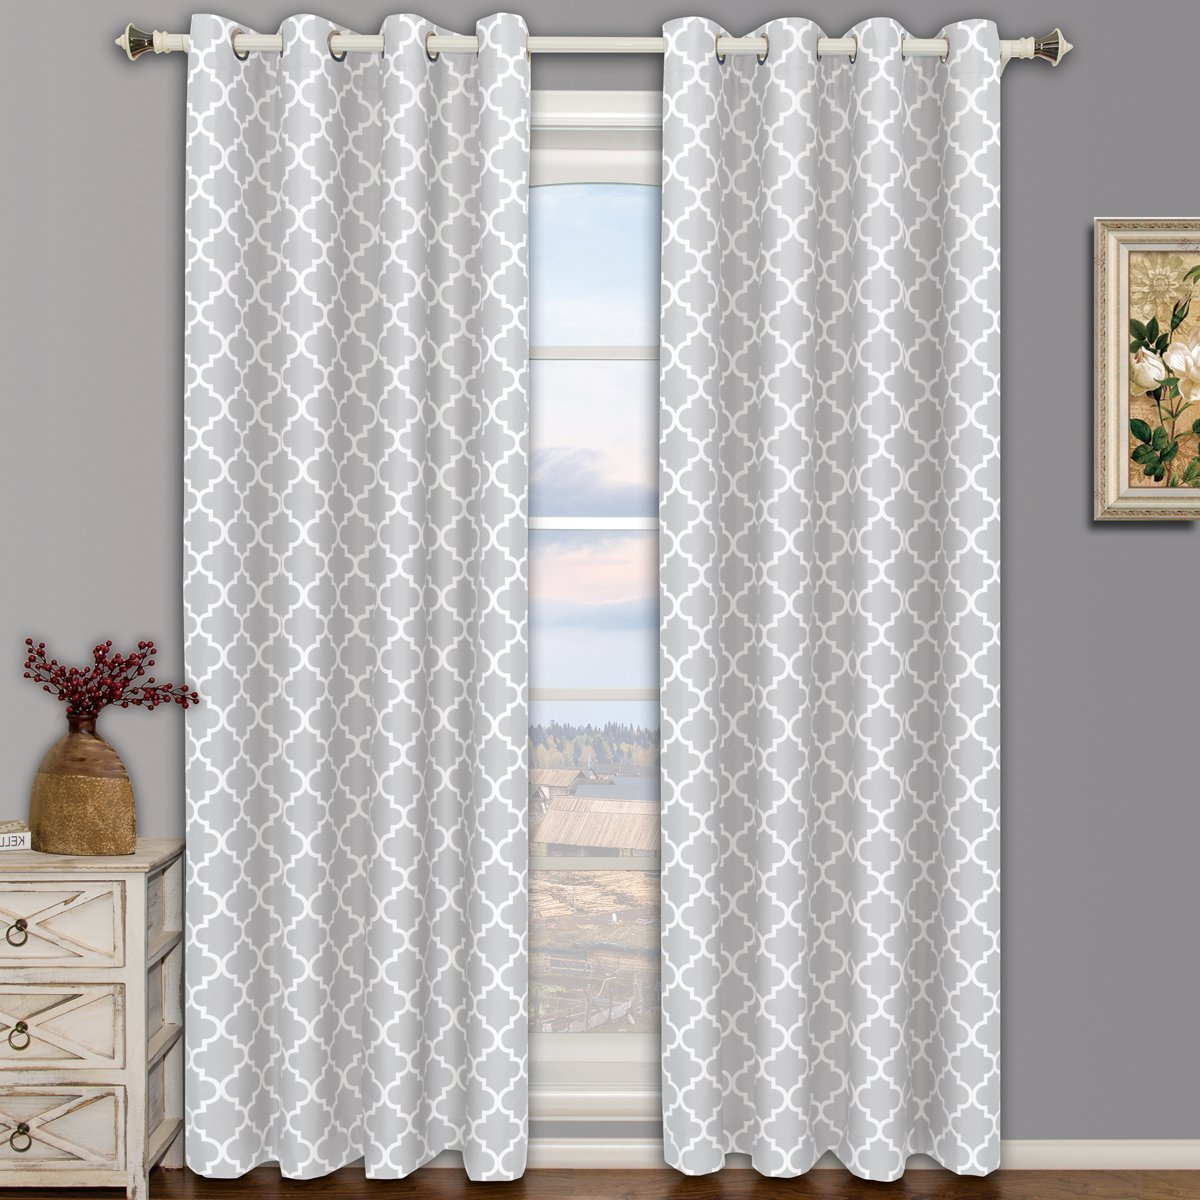 """Most Current Thermal Insulated Blackout Grommet Top Curtain Panel Pairs In Pair Of Two Top Grommet Meridian Blackout Thermal Insulated Curtain Panels, Triple Pass Foam Back Layer, Silver, Set Of Two 52""""108"""" Panels (104"""" (View 9 of 20)"""